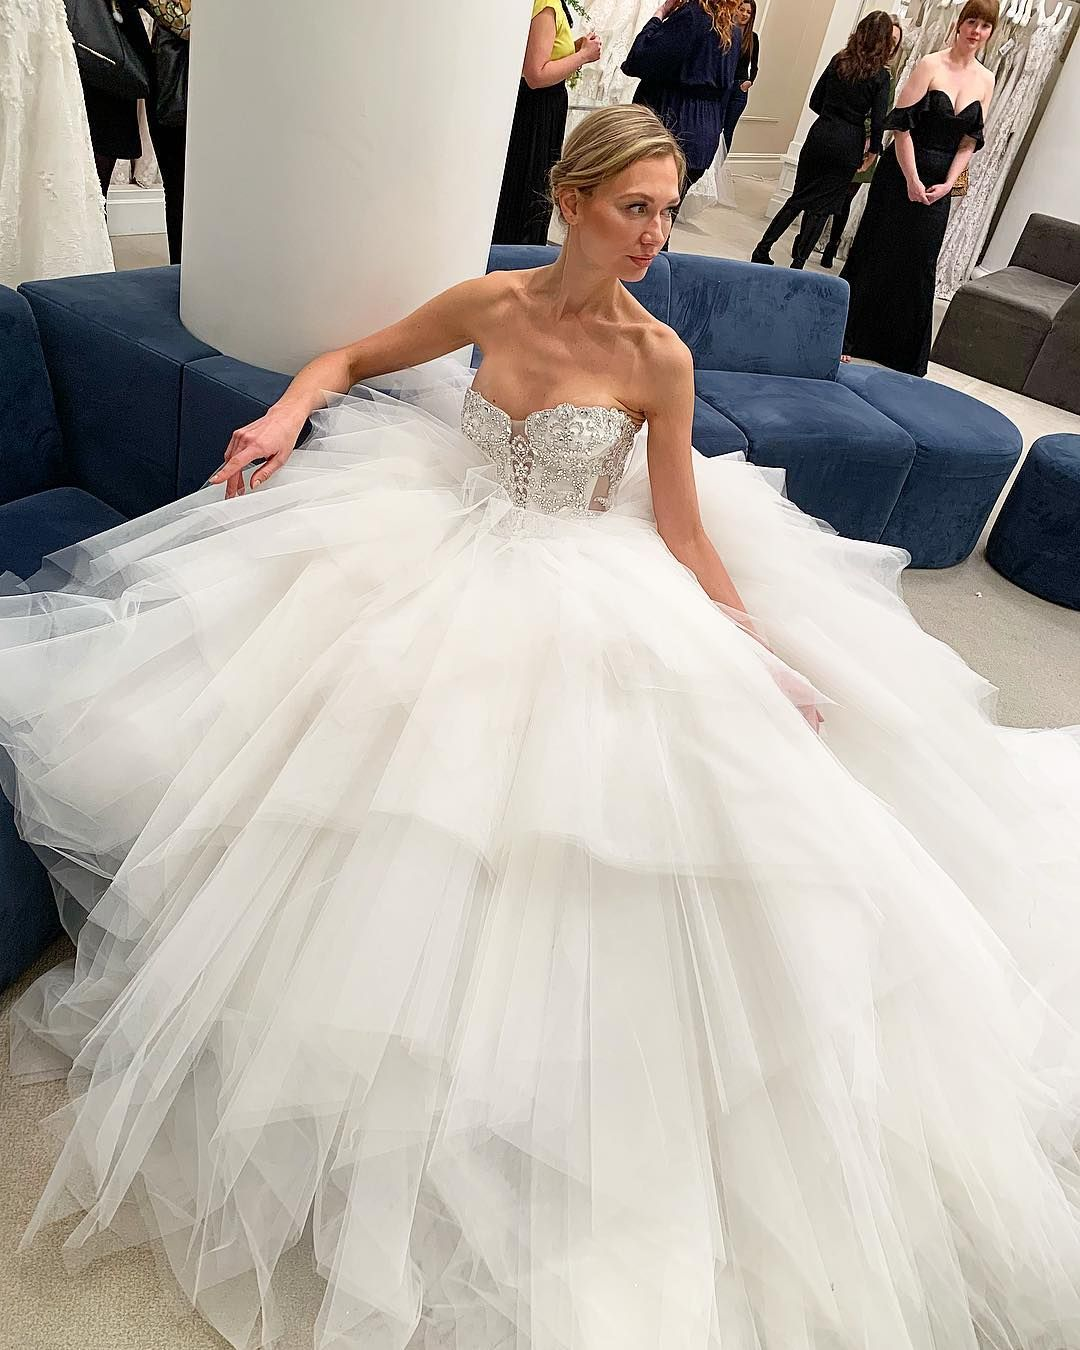 Pnina Tornai Ball Gown Wedding Dress Available At Kleinfeld Bridal Wedding Dresses Pnina Tornai Wedding Dress Ball Gowns Wedding